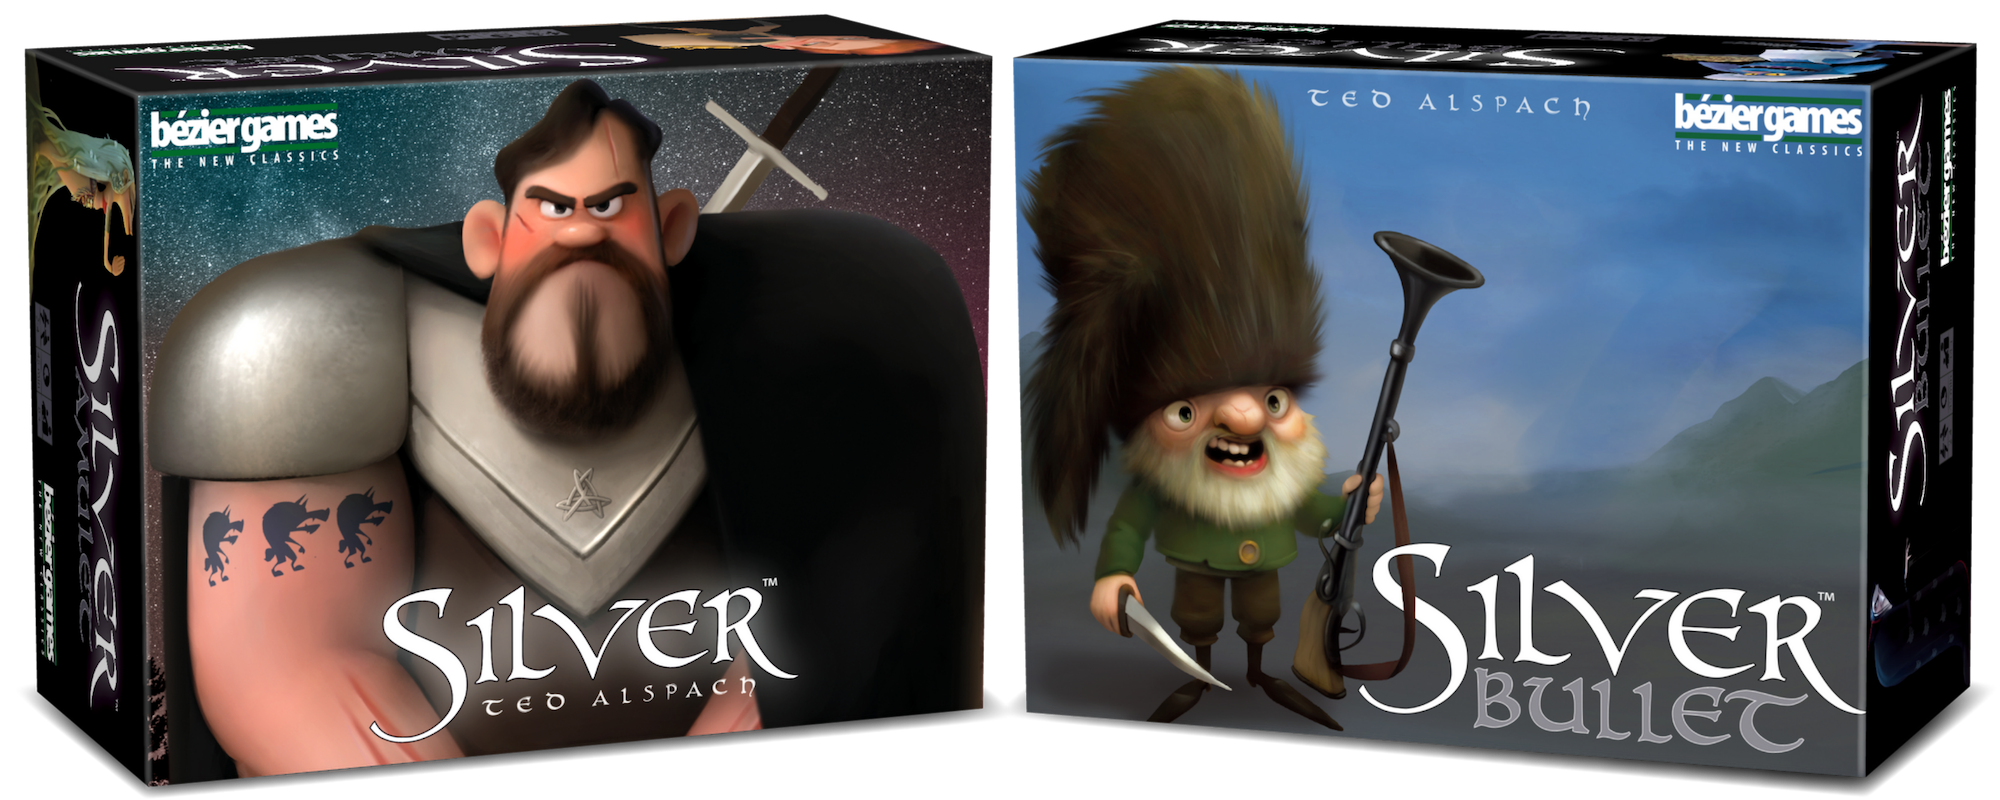 The box covers for Silver, and Silver Bullet. Two new games from Ted Alspach and Bezier Games.